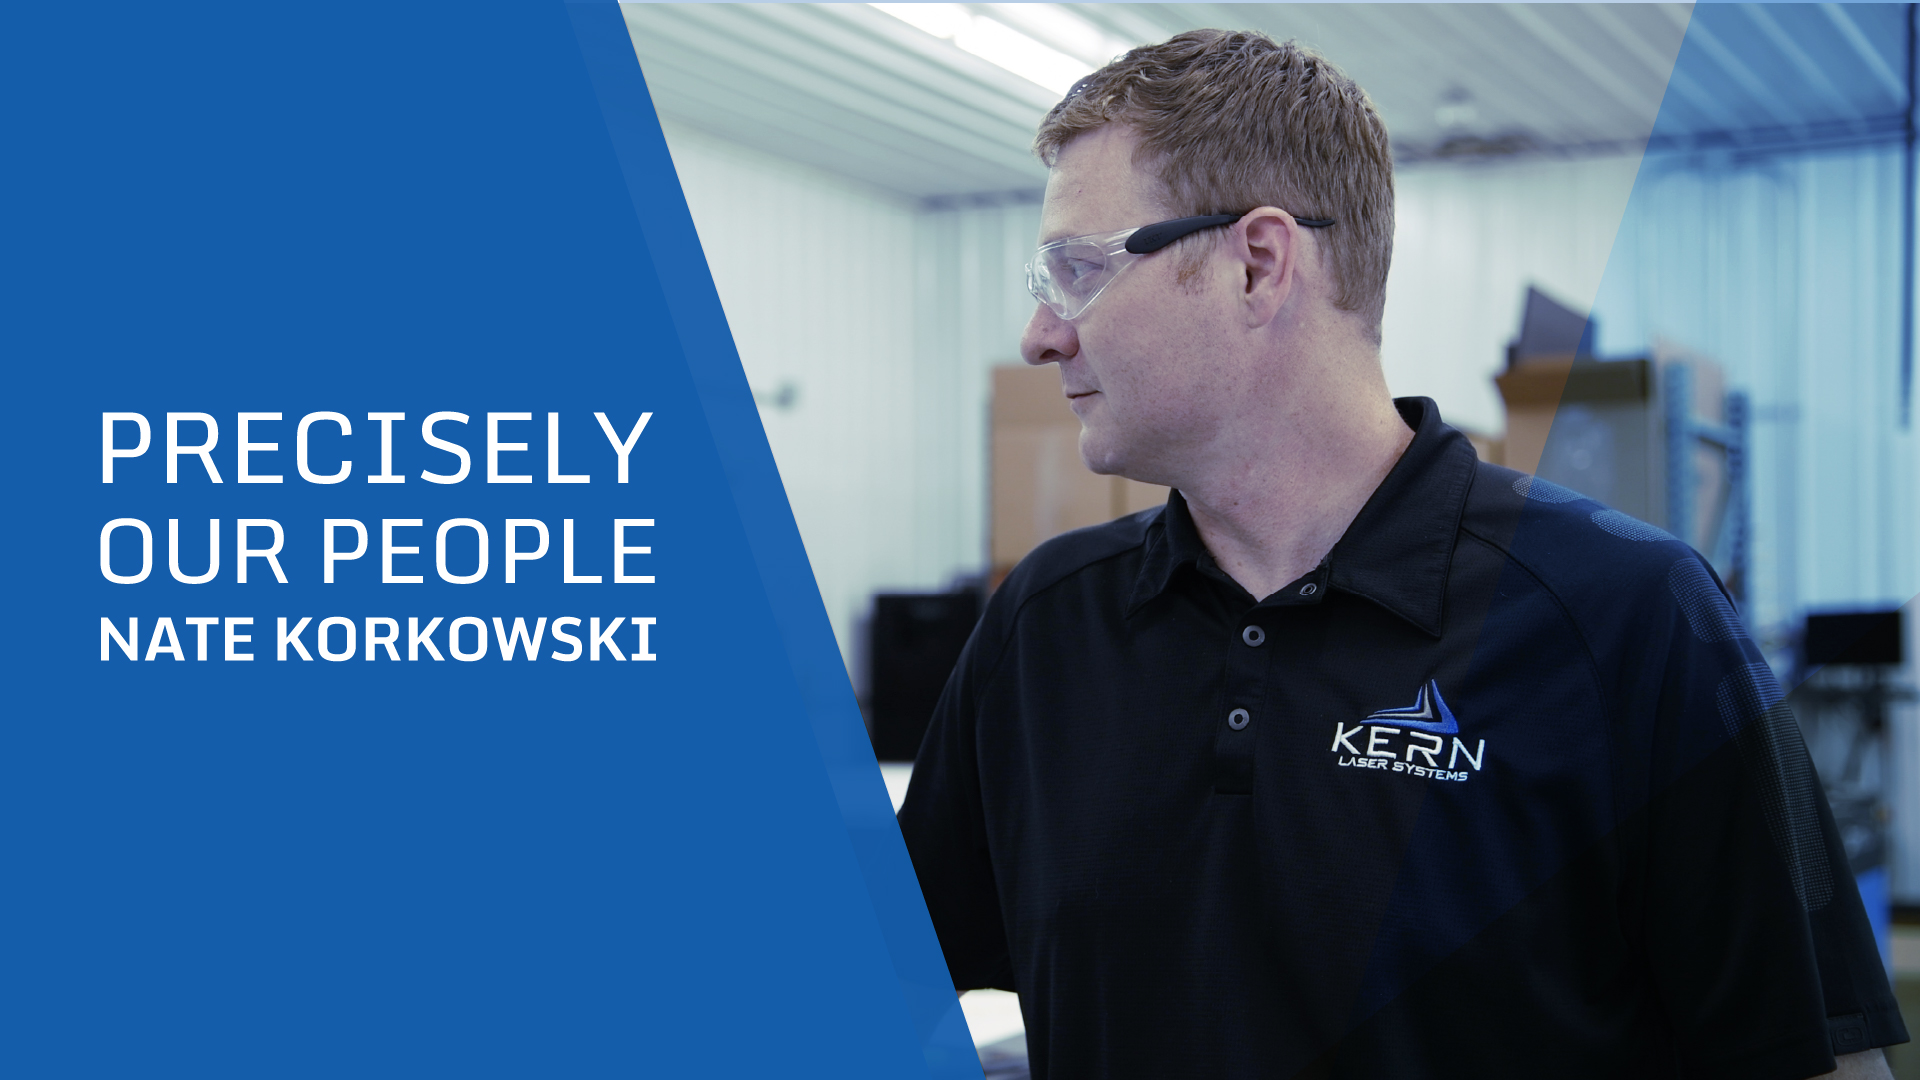 Precisely Our People: Meet Nate Korkowski